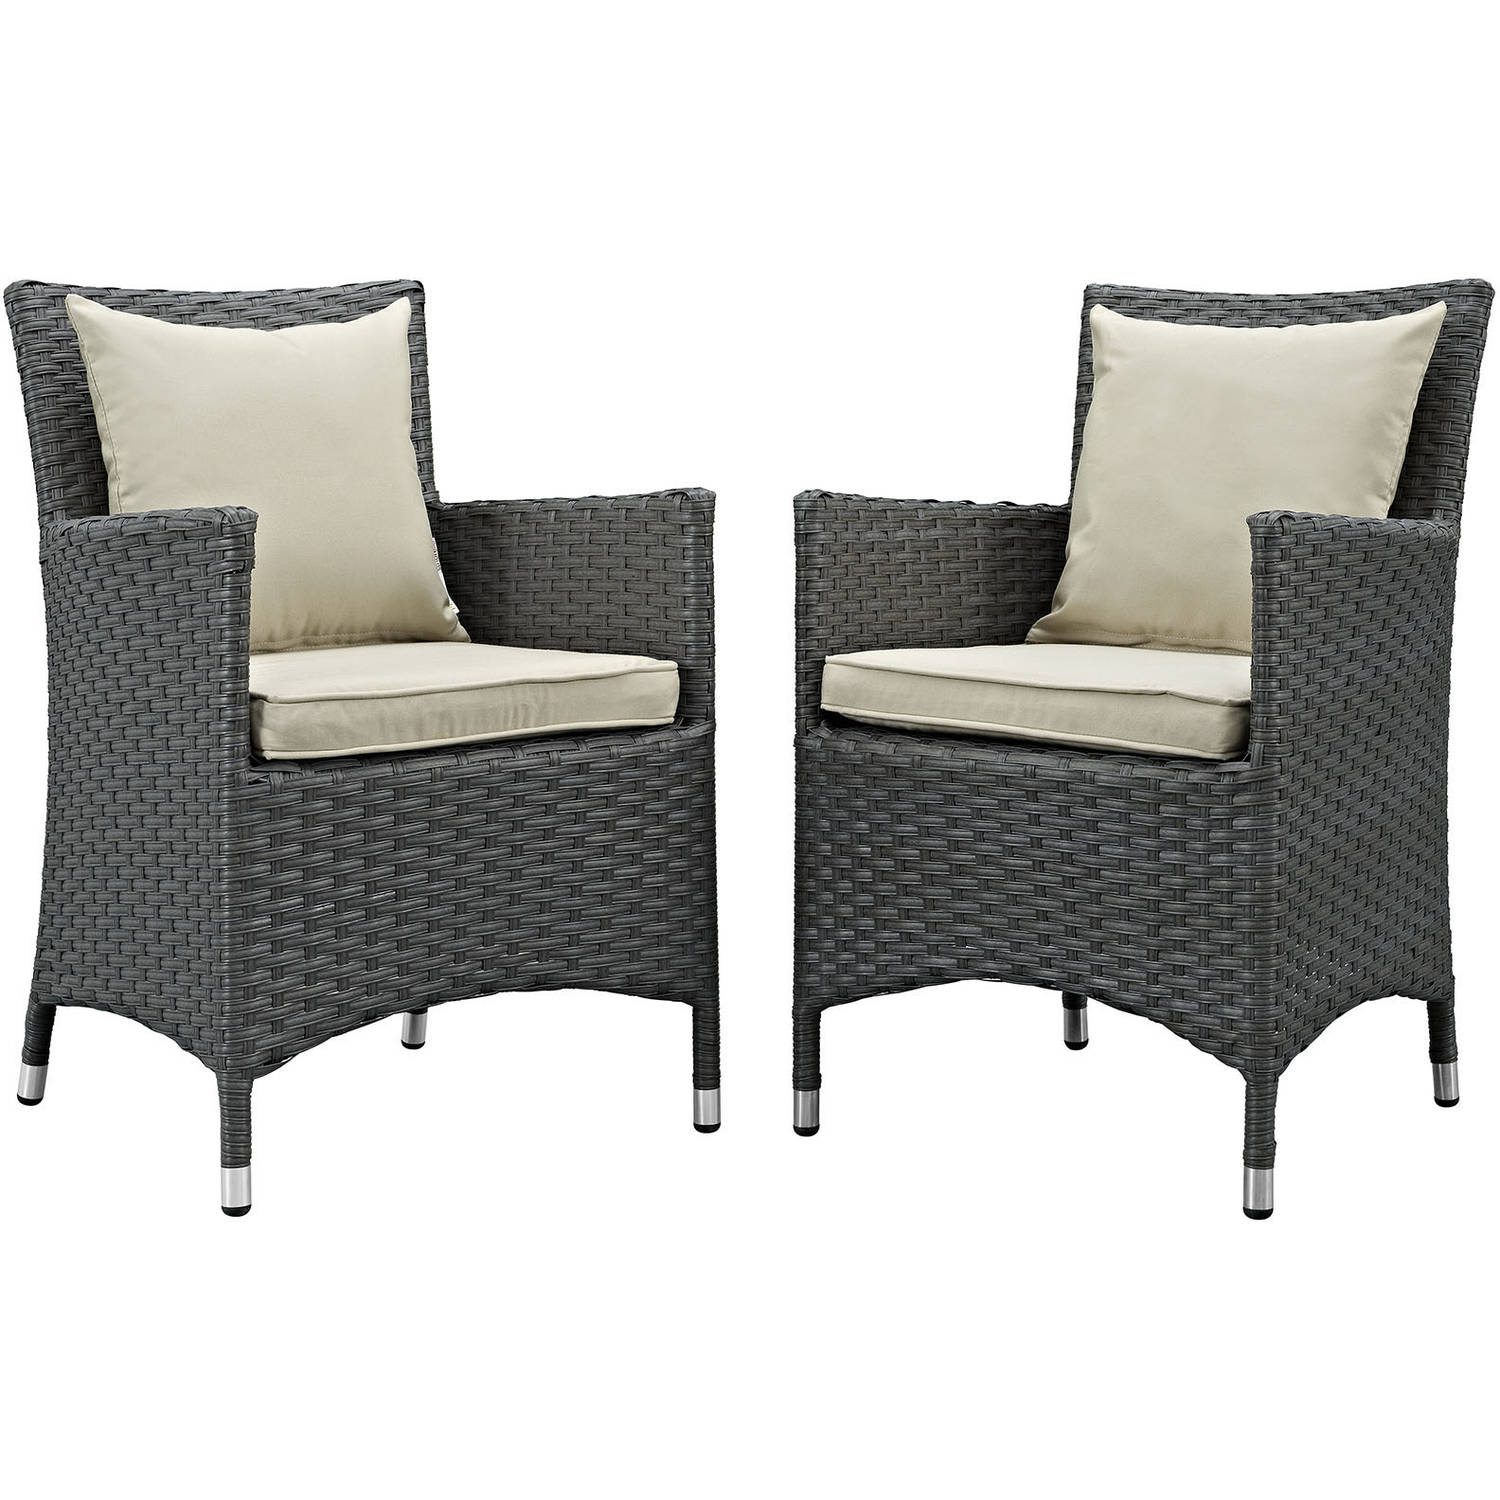 Modway Sojourn 2 Piece Outdoor Patio Sunbrella Dining Set, Multiple Colors